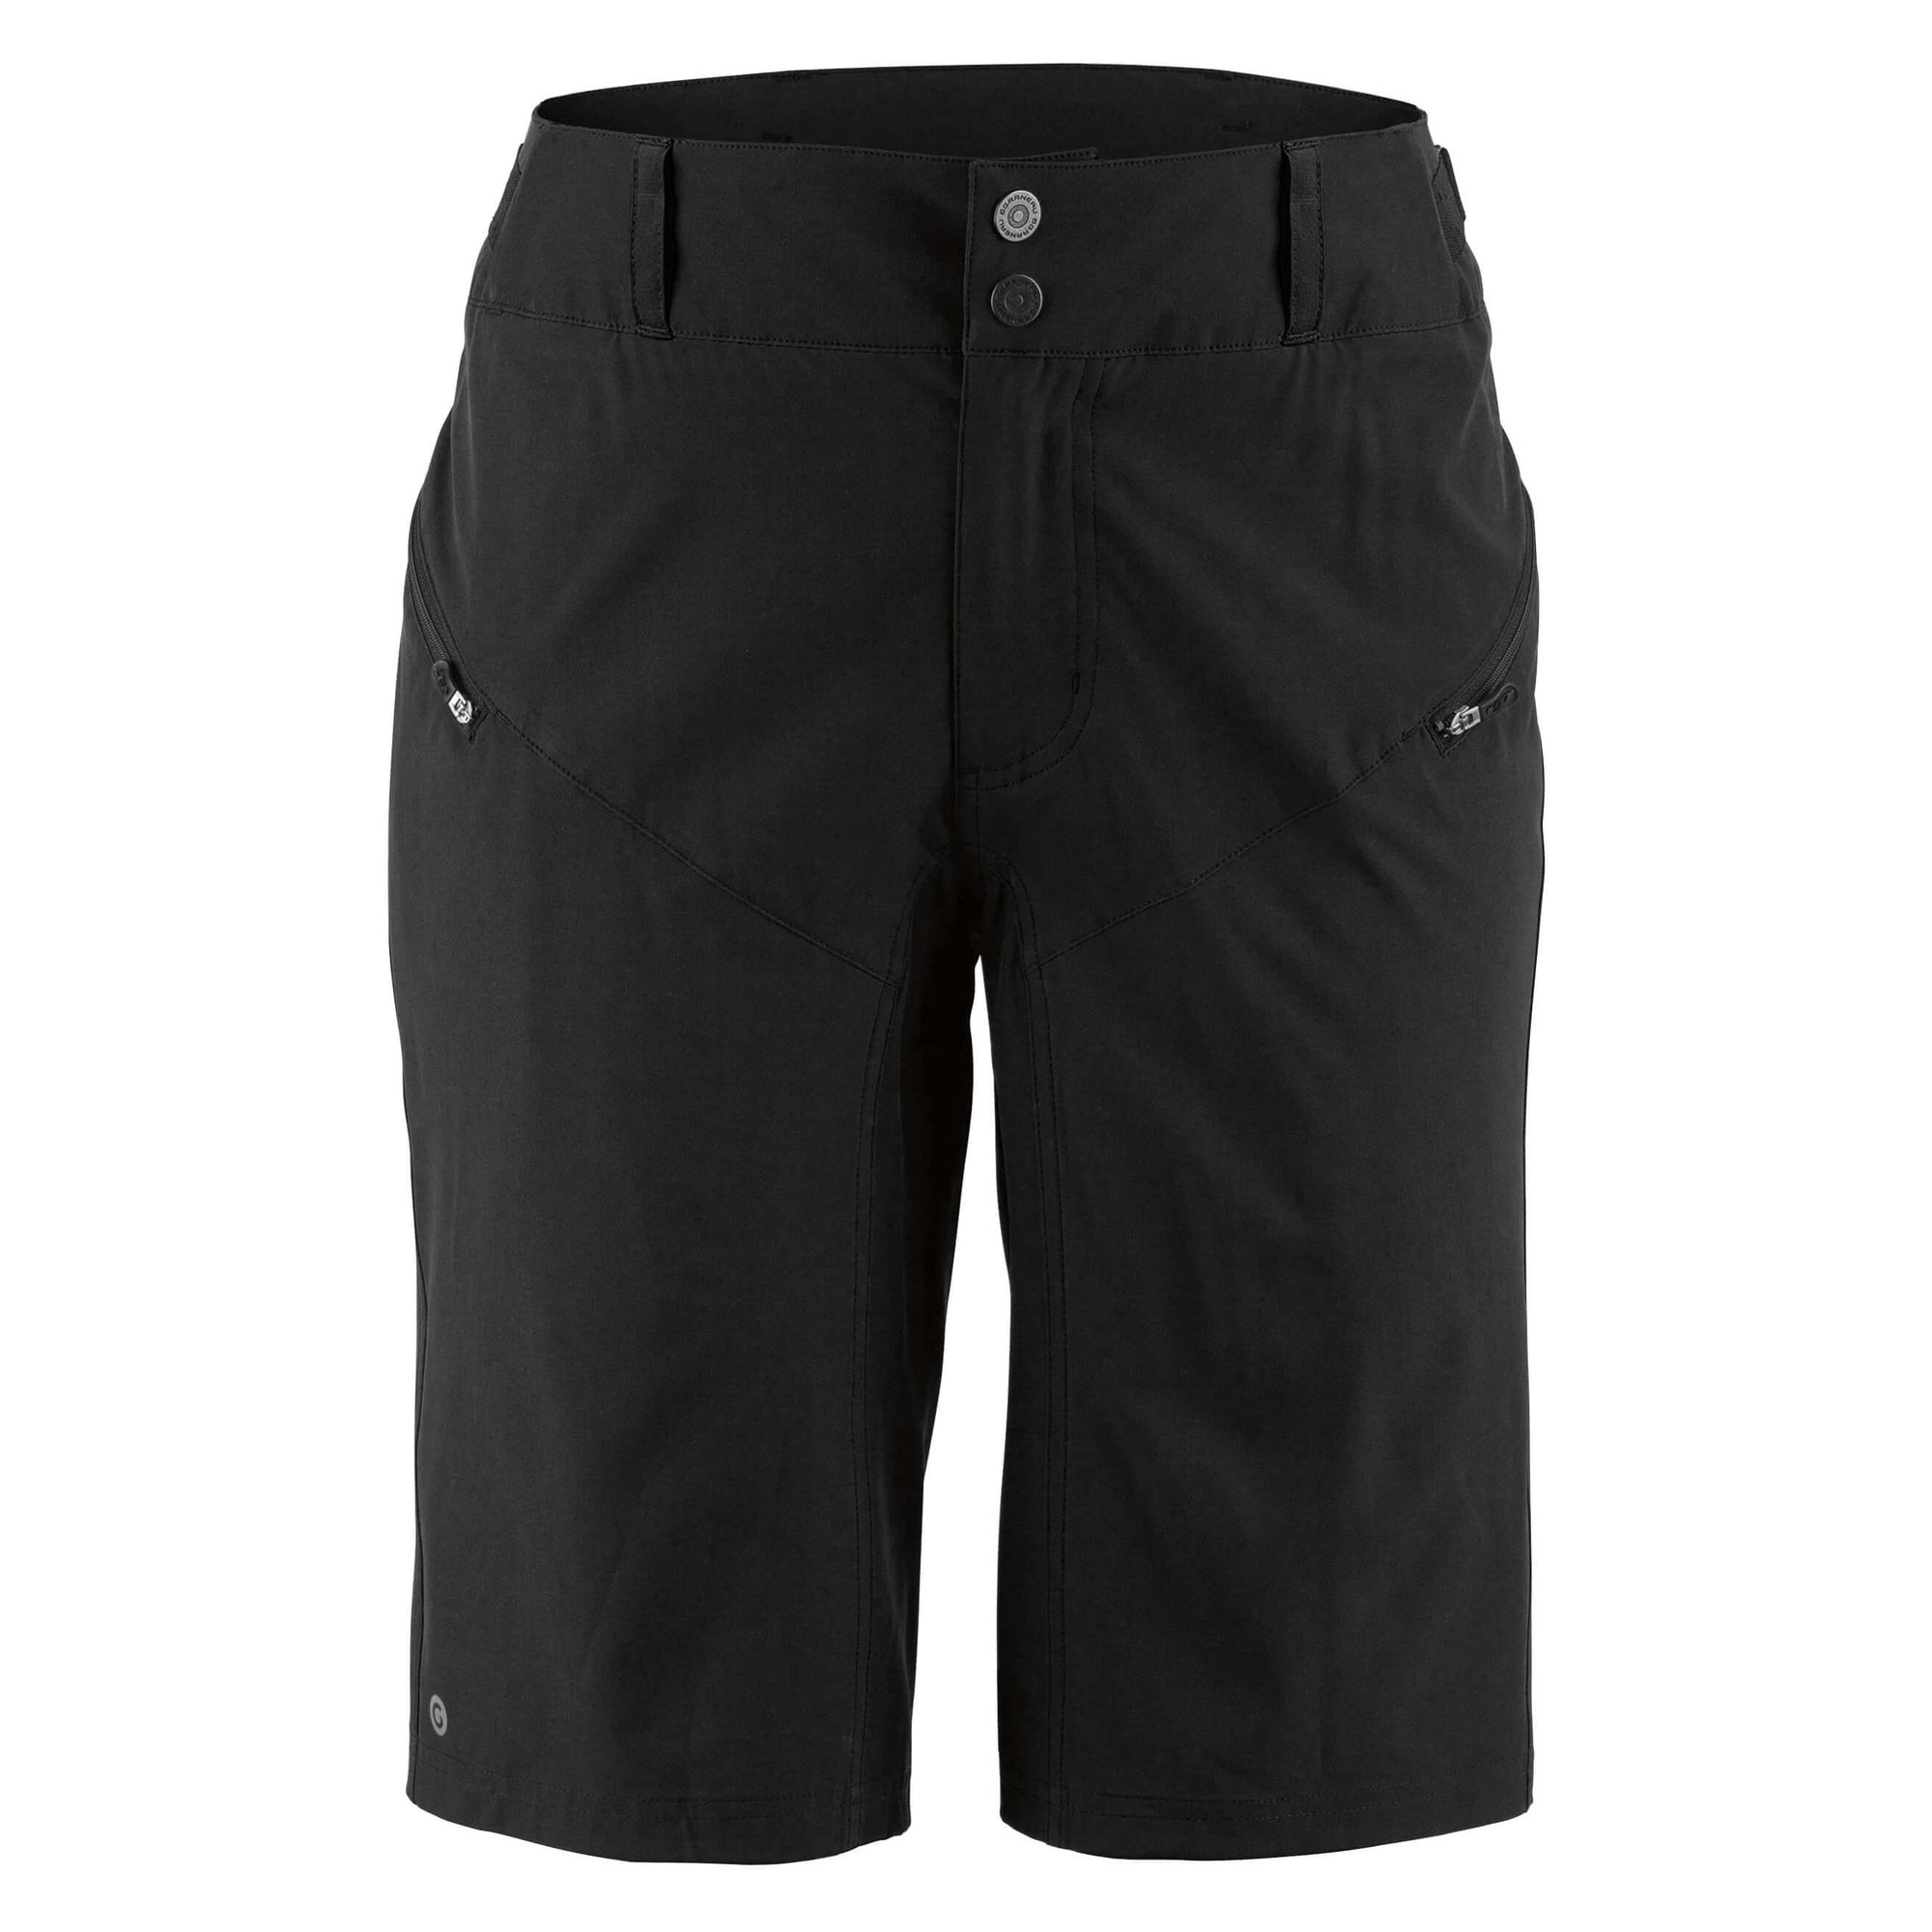 Louis Garneau 2020 Women's Latitude 2 Short